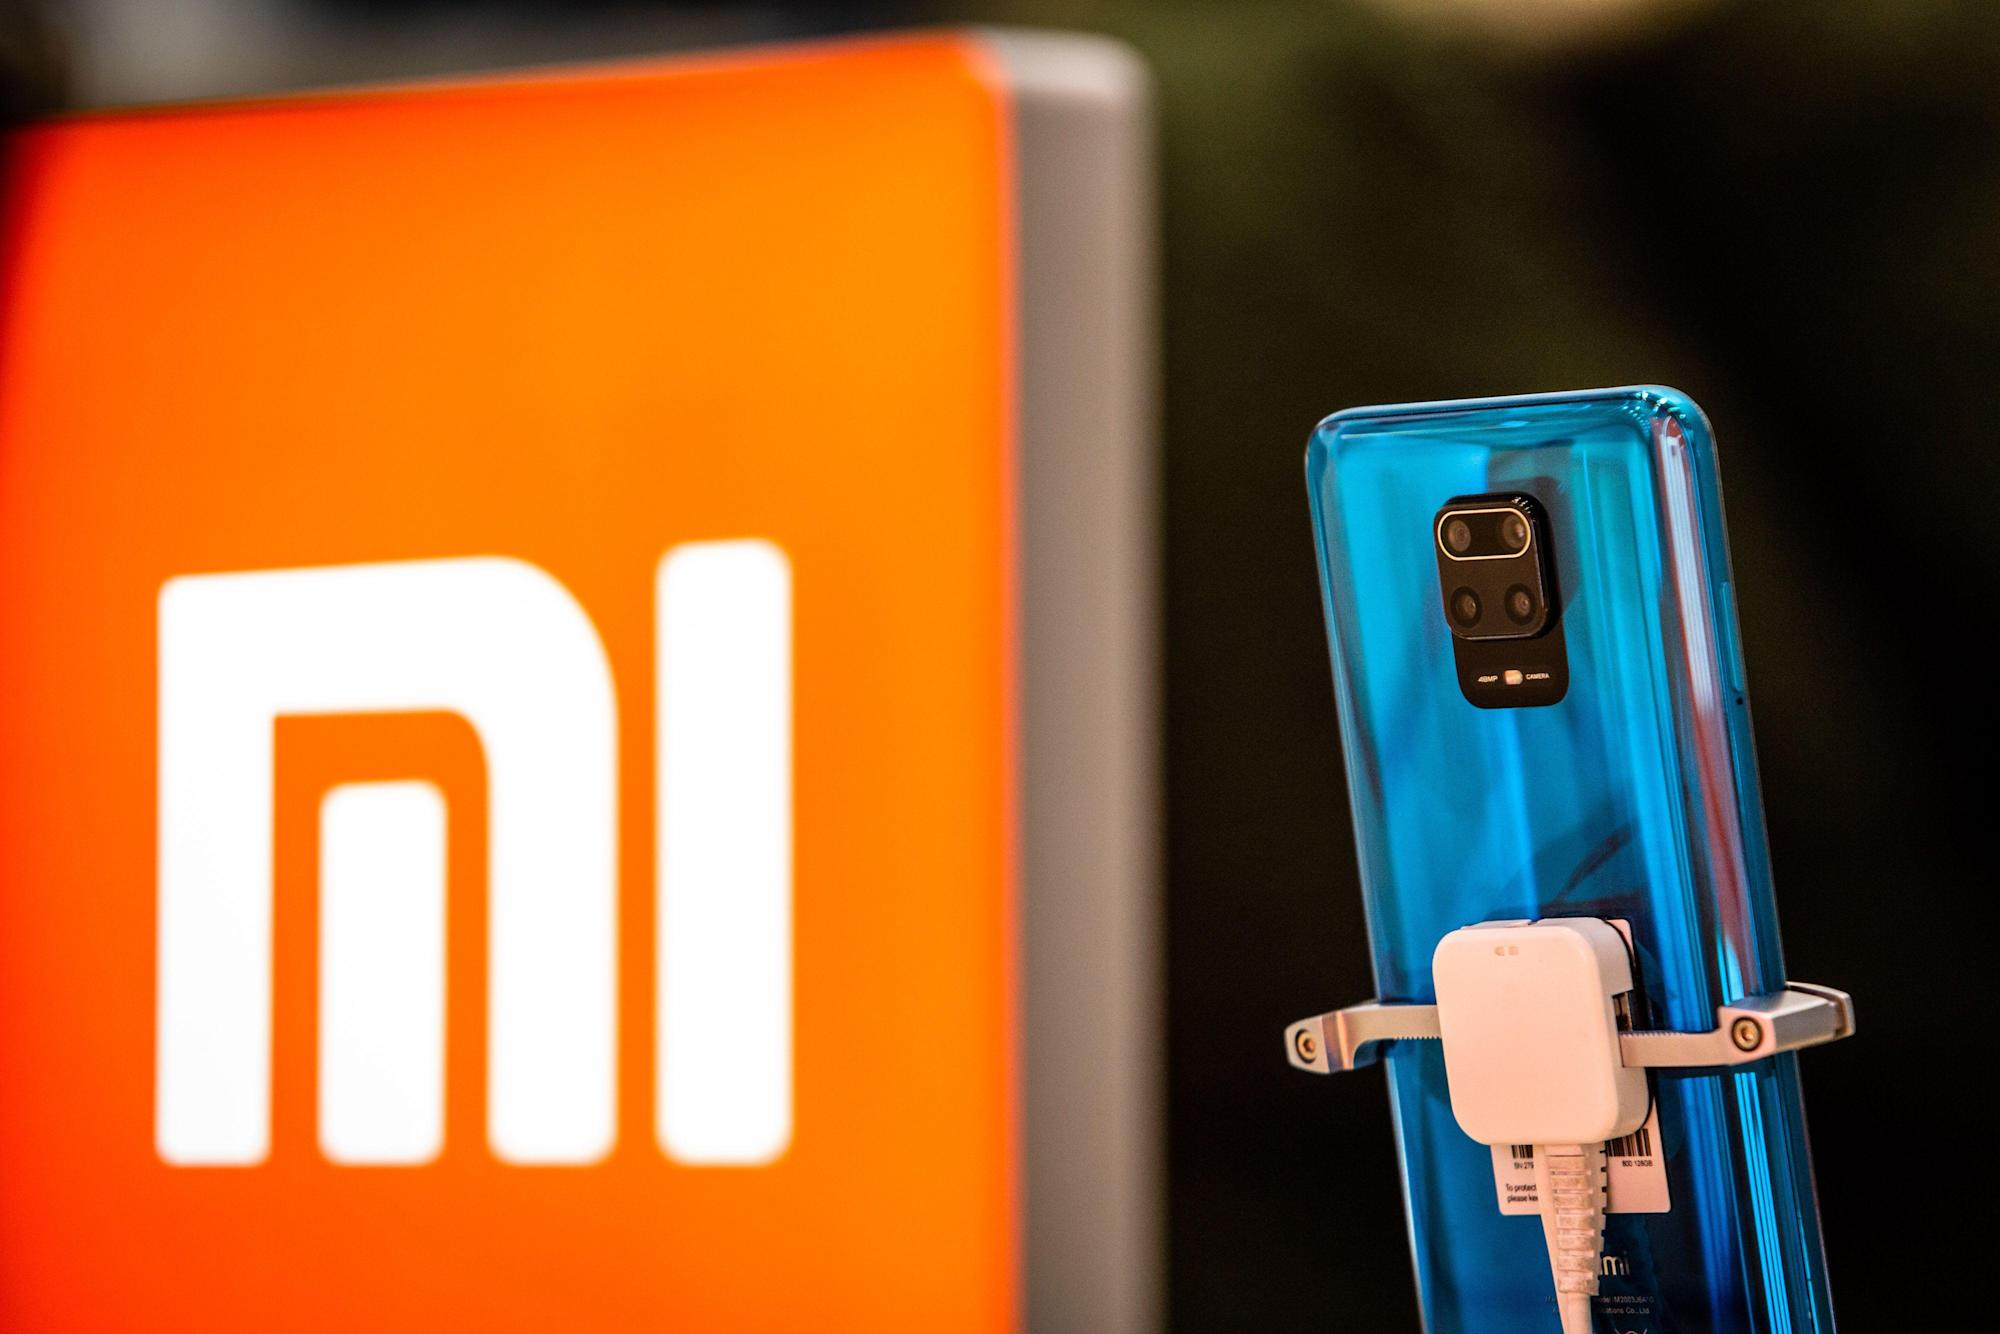 Xiaomi Overtakes Apple as World's No. 2 Phone Maker, Canalys Says